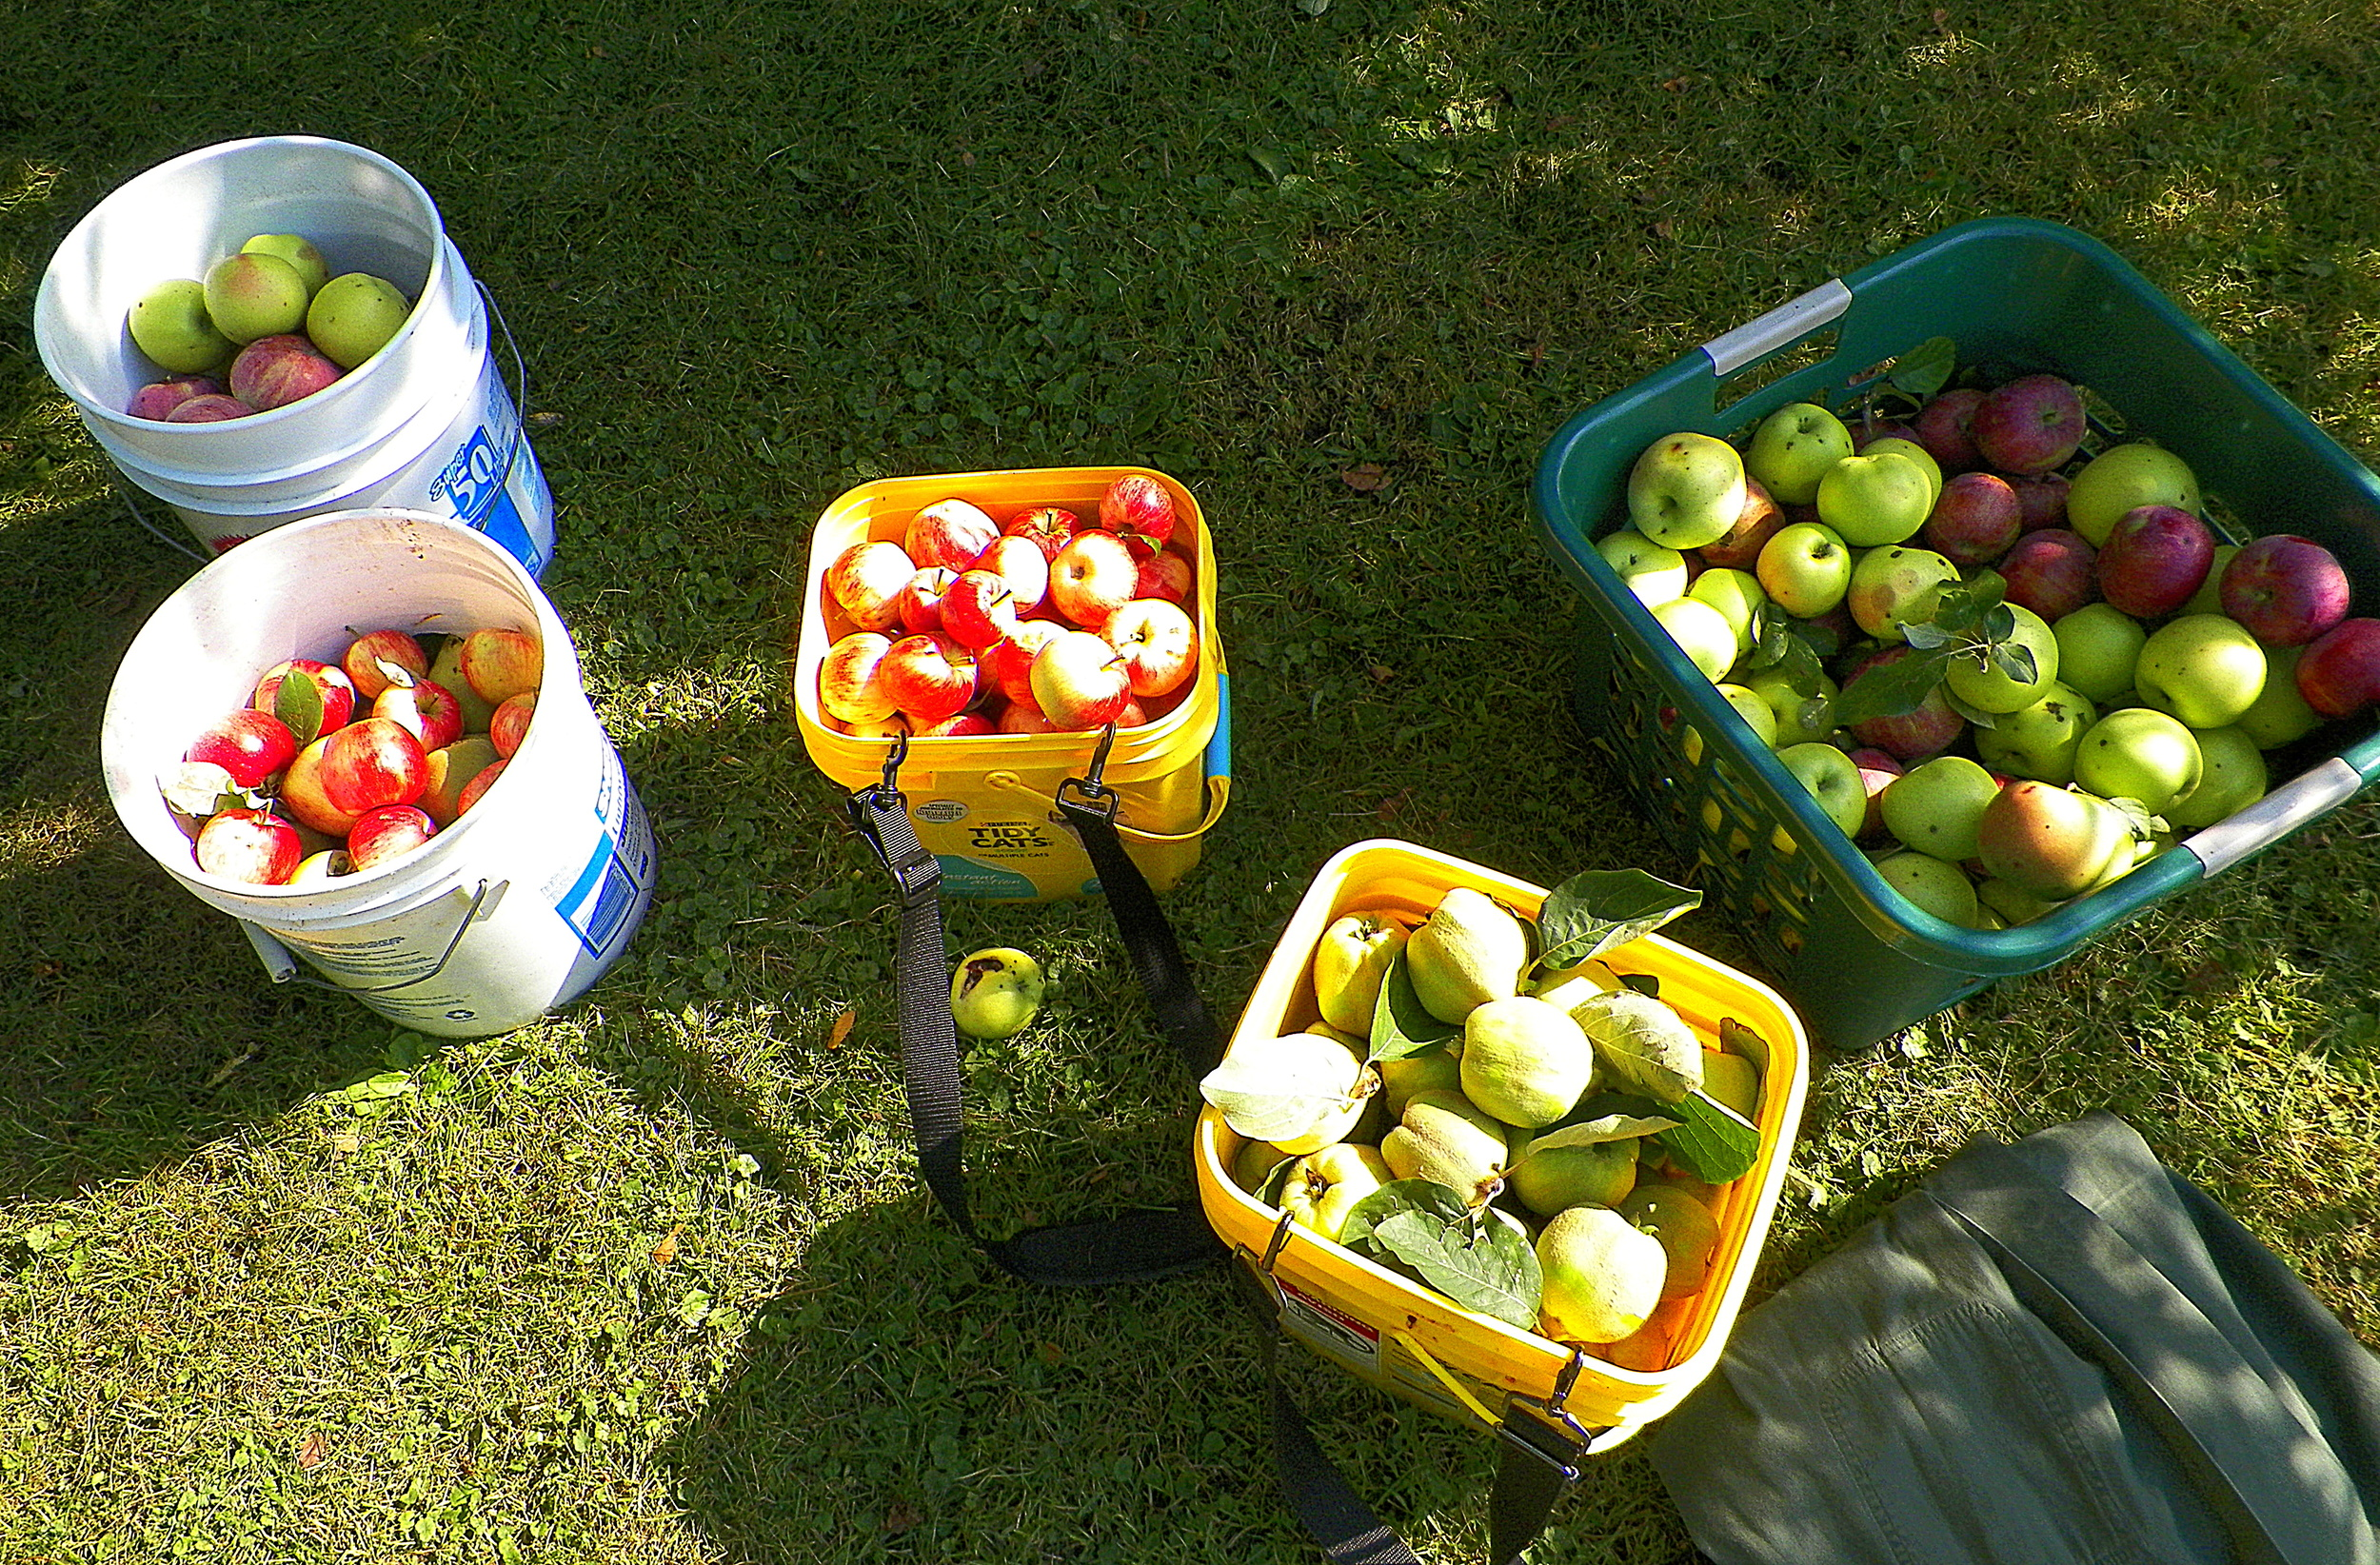 foraged apples and quince  9-23-13.JPG